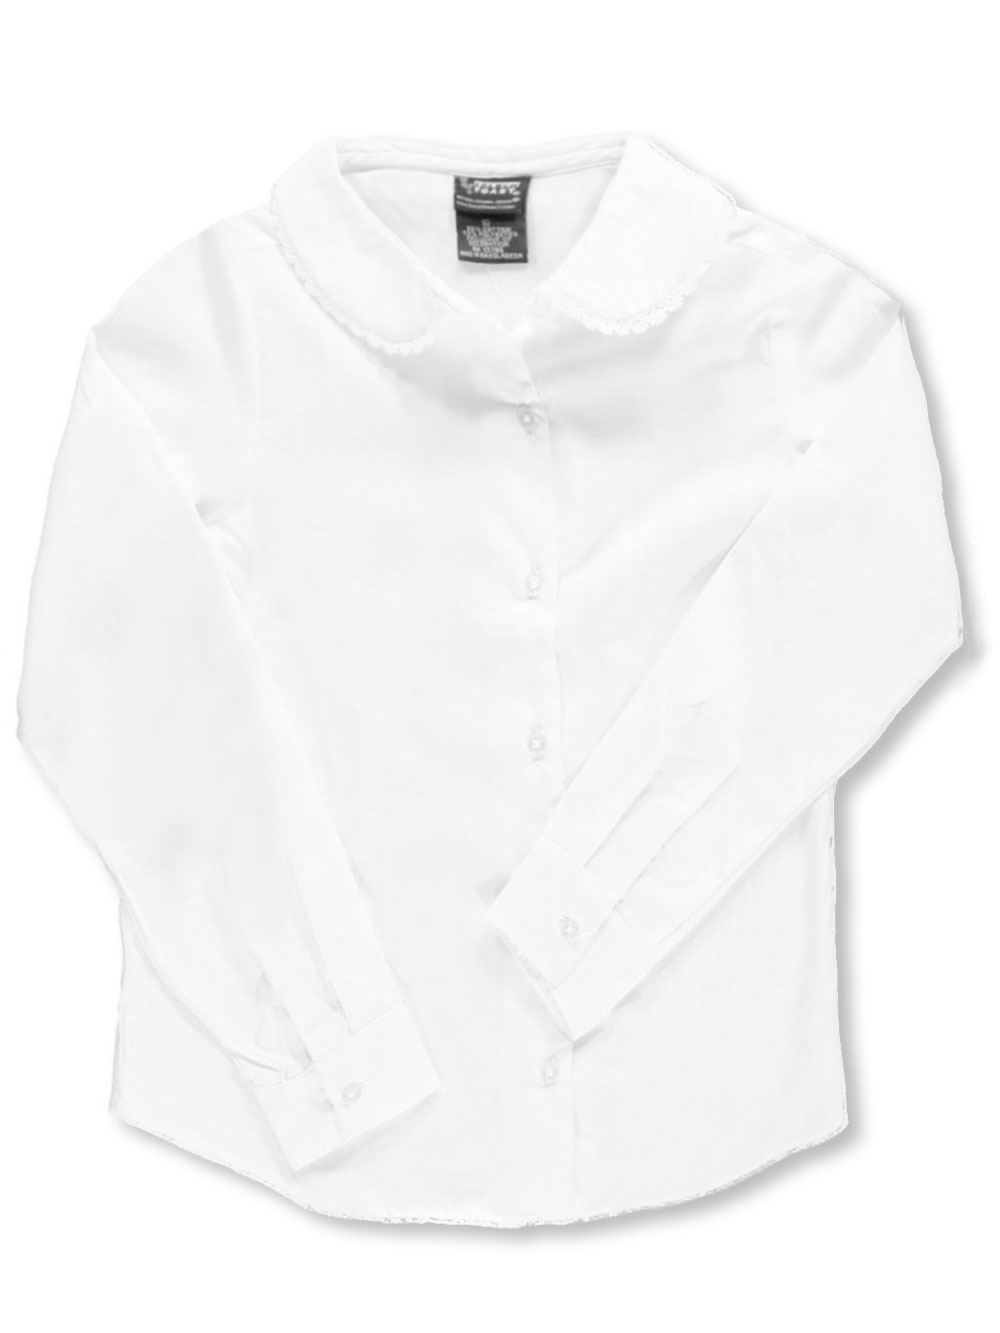 Image of French Toast School Uniform Big Girls LS Blouse with Lace Edging Sizes 7  16  white 20